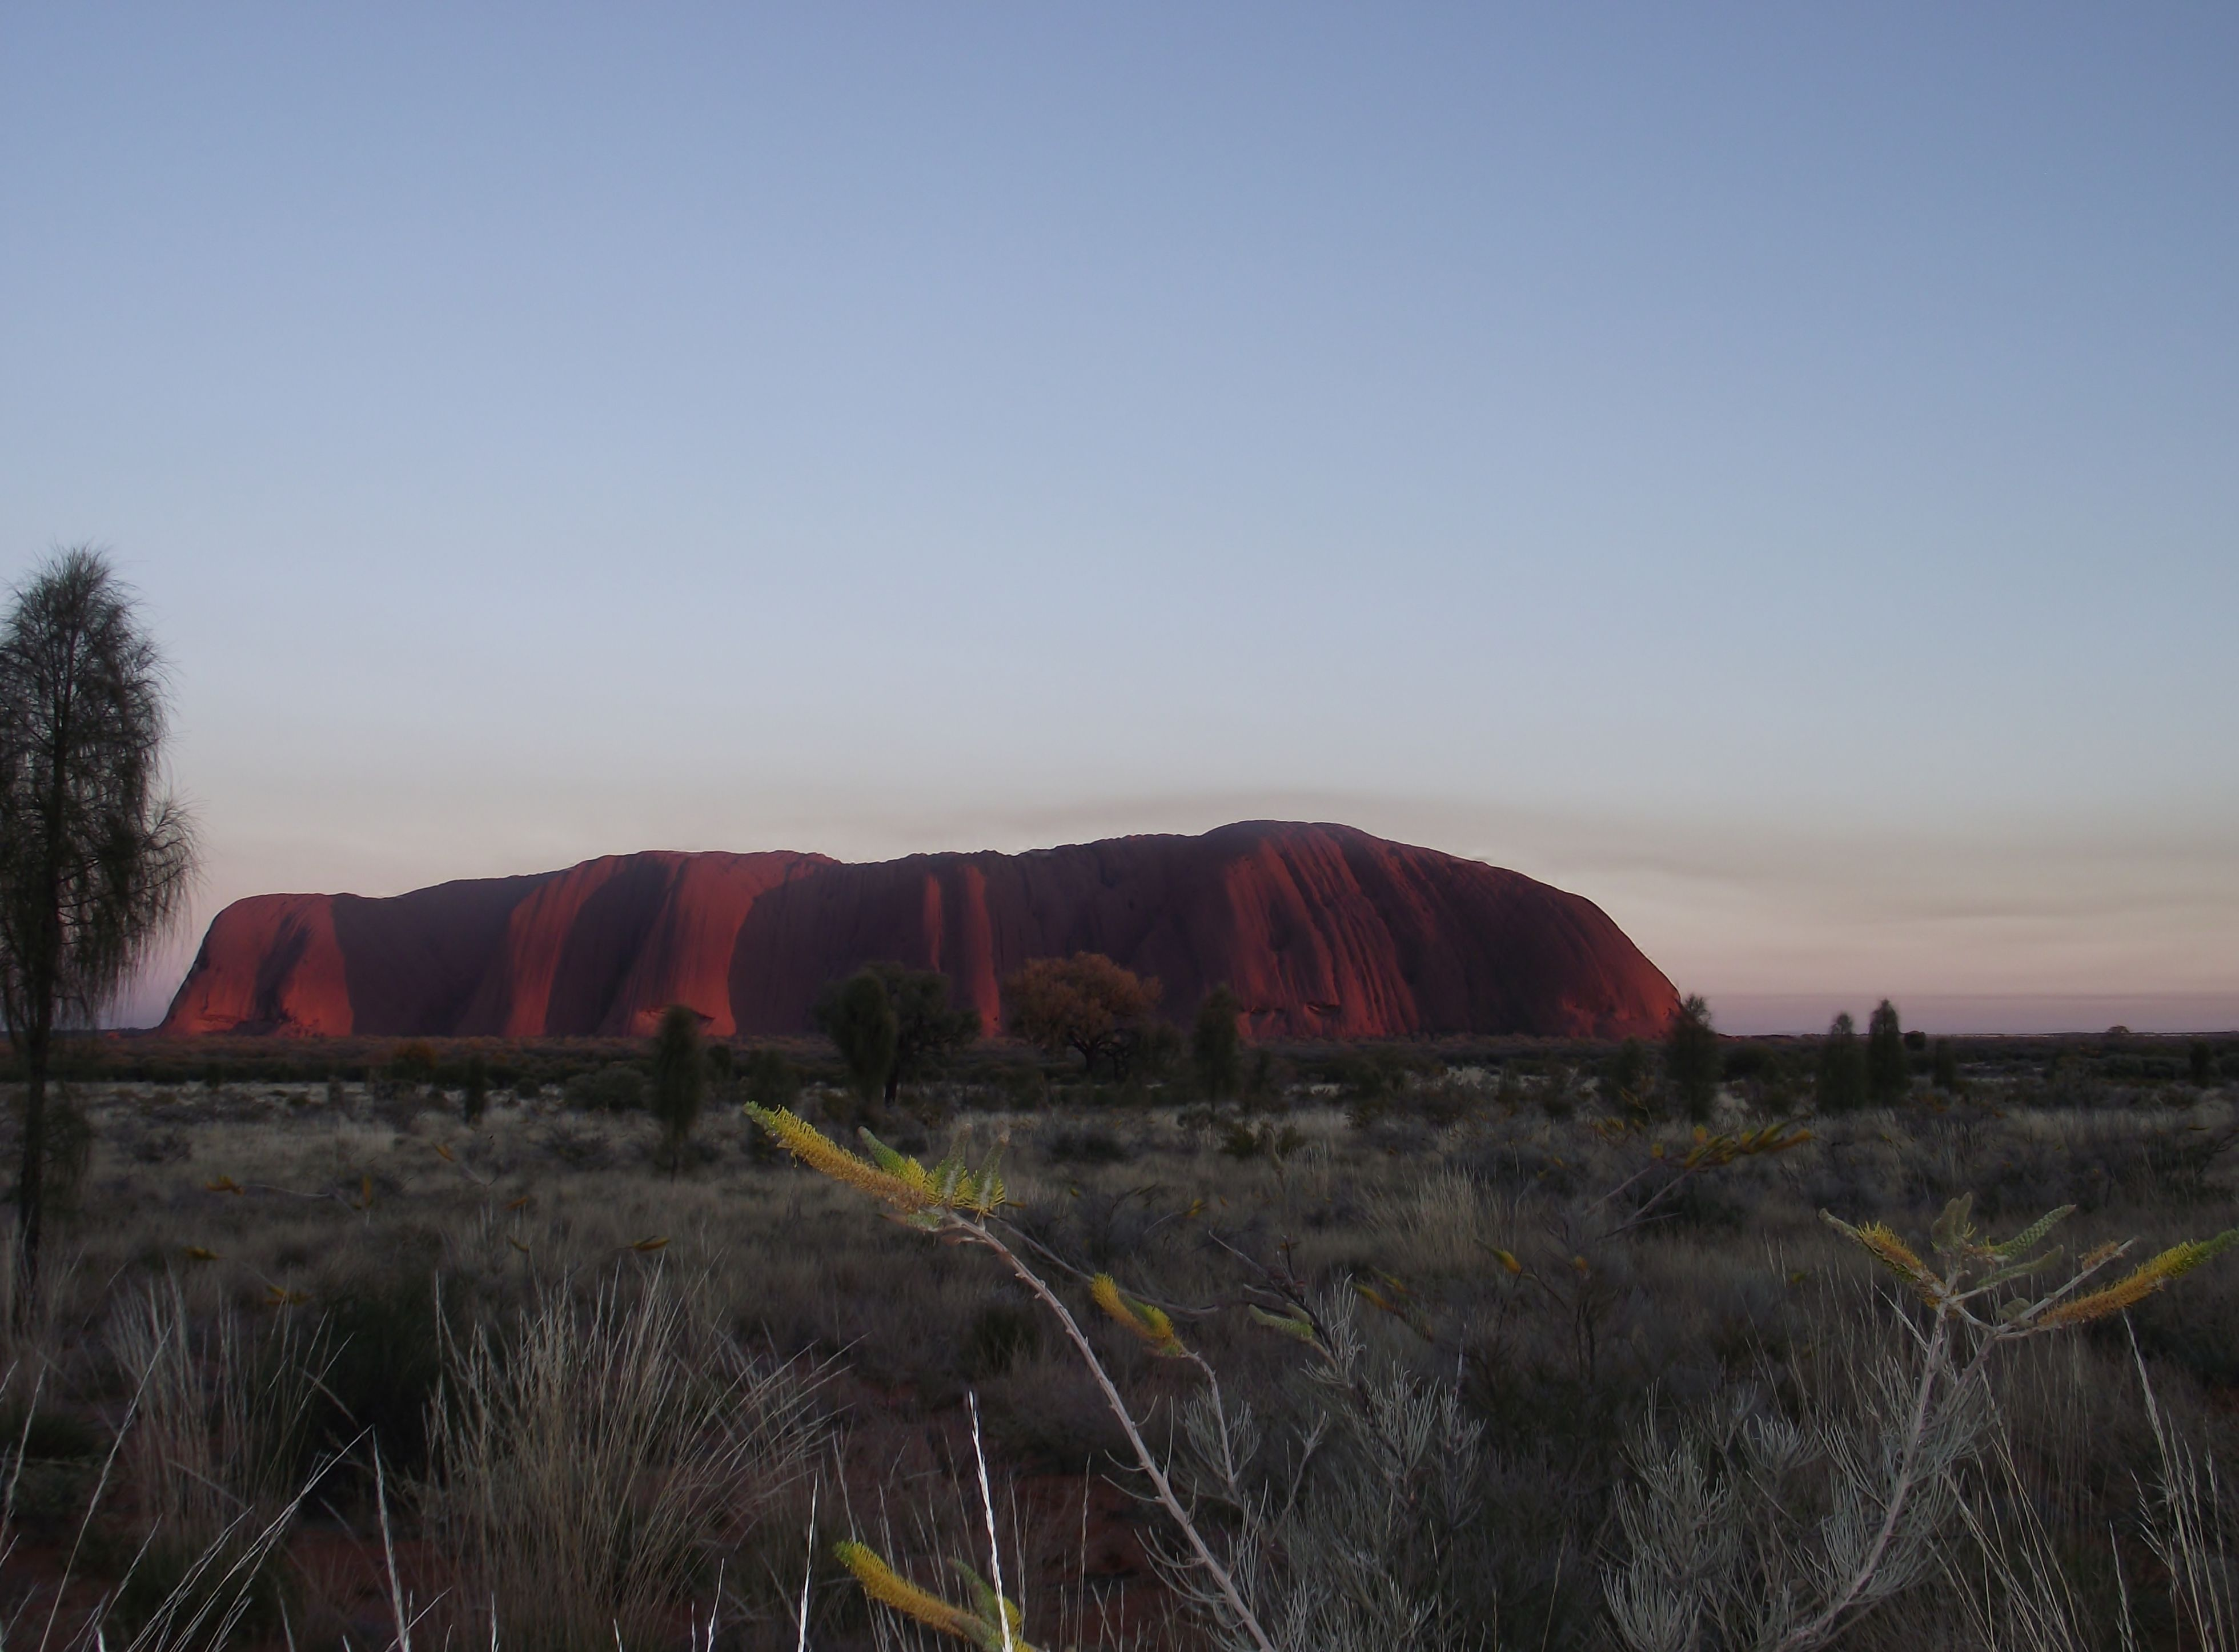 Ayers rock also known as Uluru.....it was amazing to see it in person.